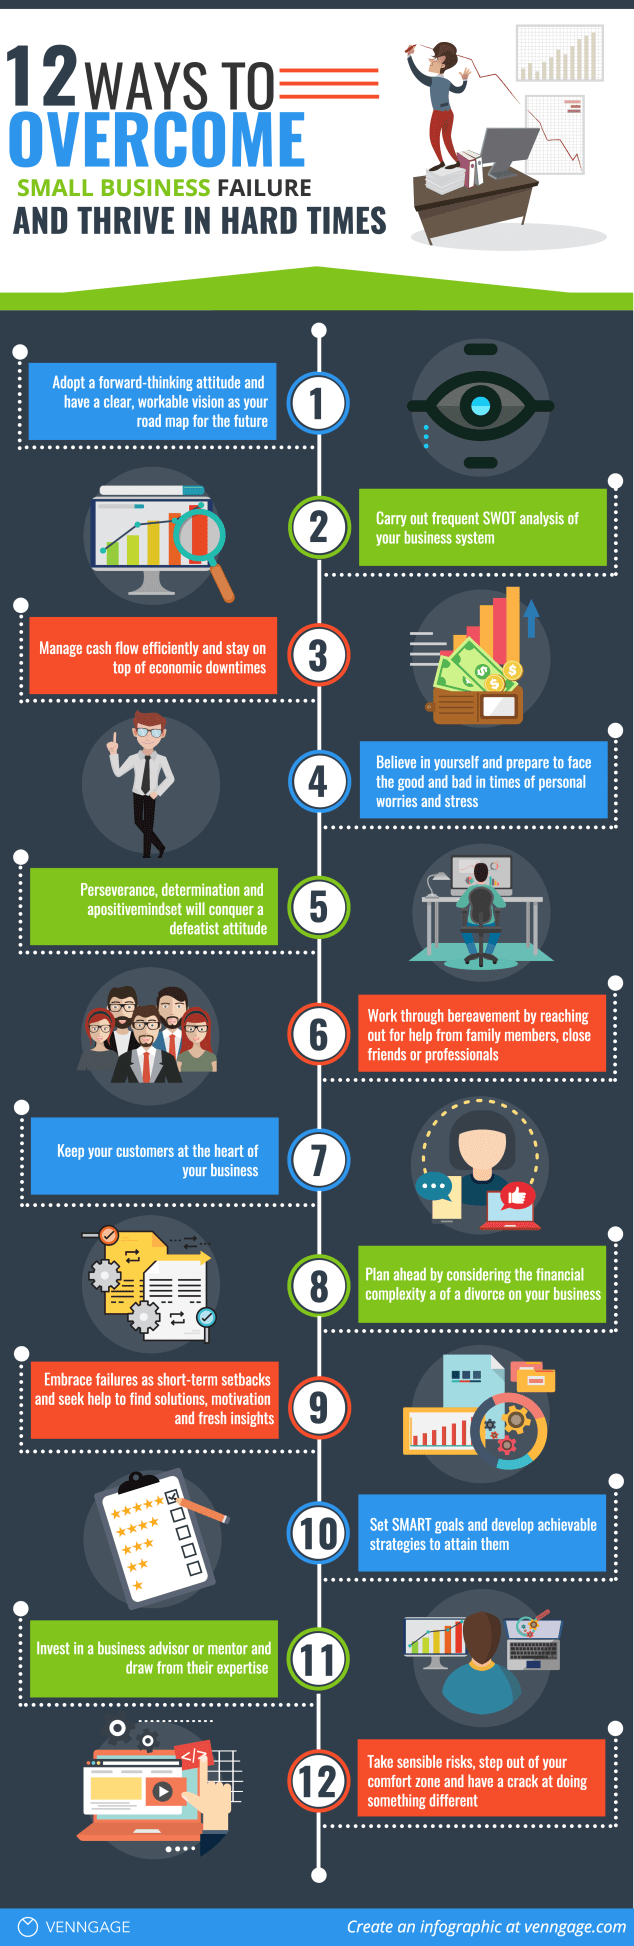 12-ways-to-overcome-INFOGRAPHIC-HD.png